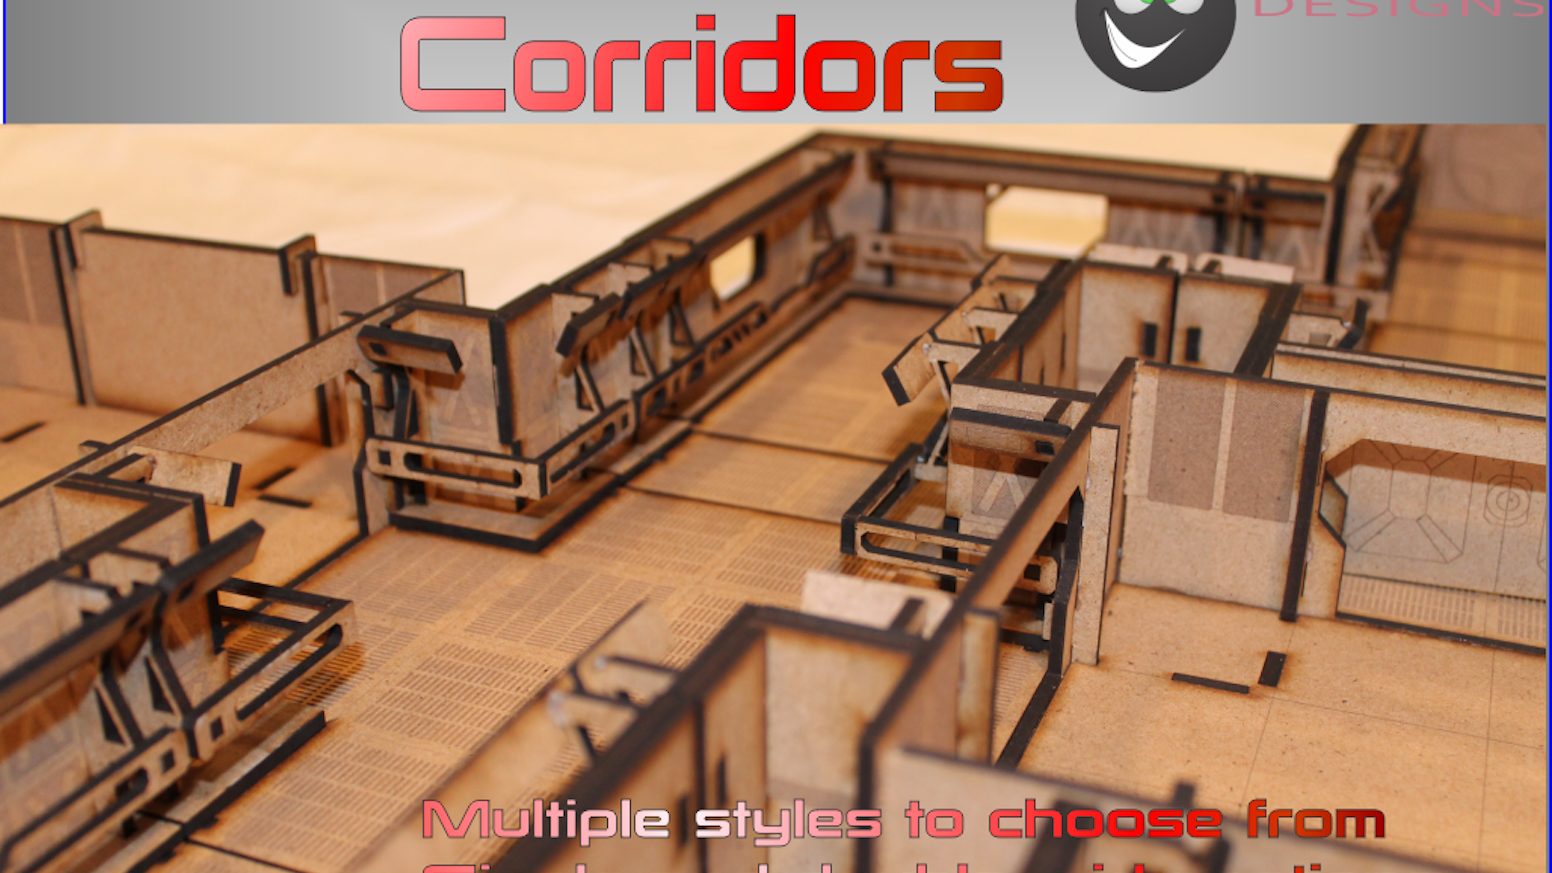 ae136f36a46cb Corridor Sets From Sci Fi to Steampunk Available by Al Maguire ...